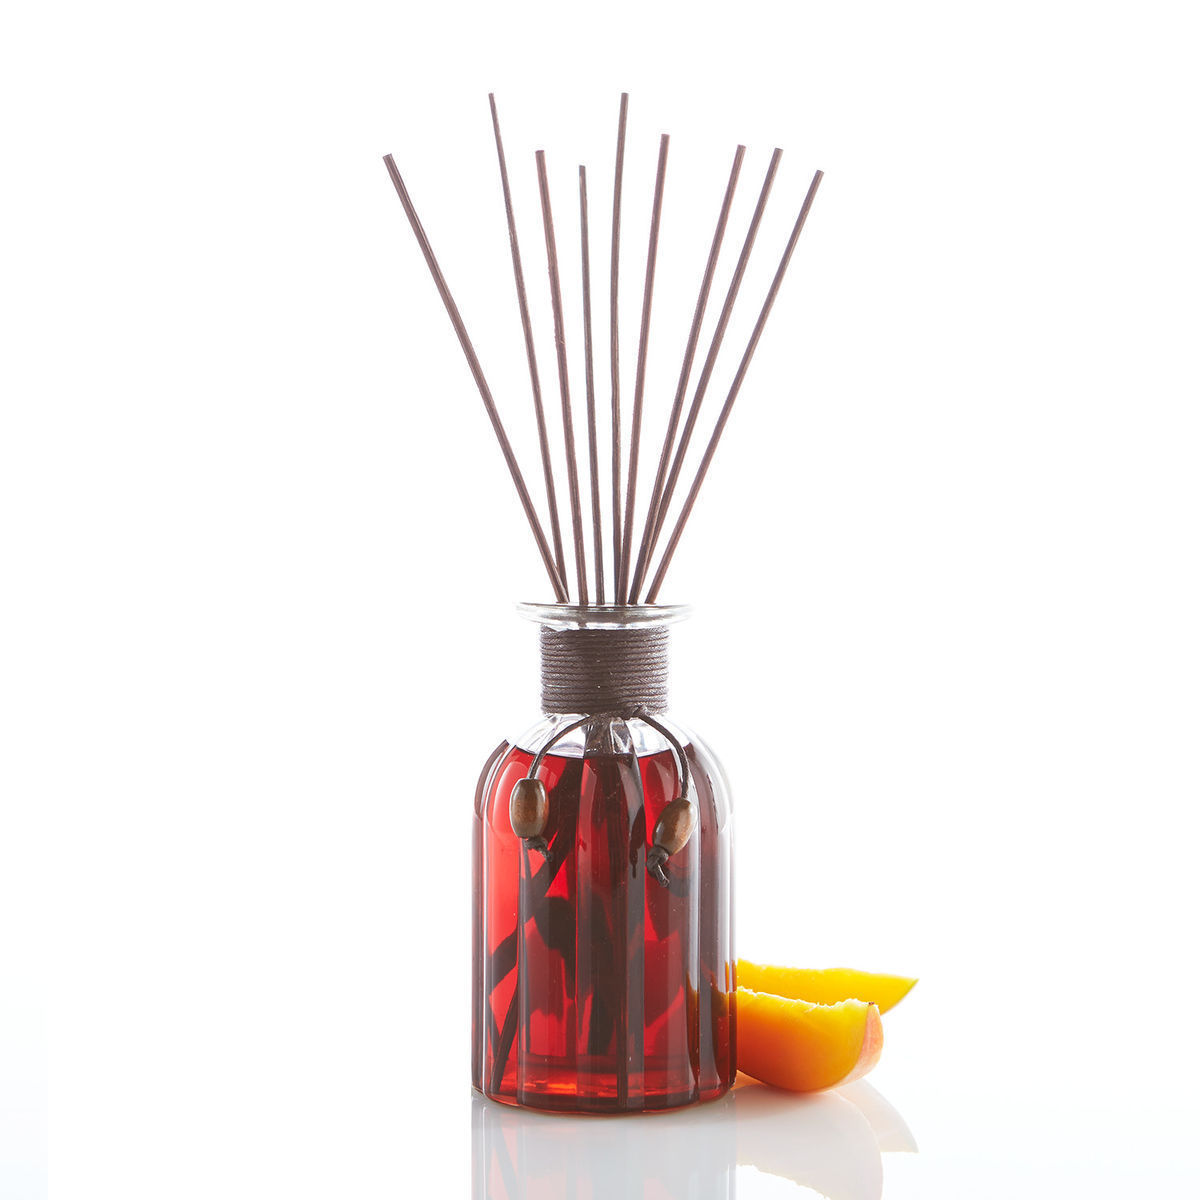 Pier 1 Imports Reed Diffuser - Island Orchard Island Orchid Diffuser Oil  Refill